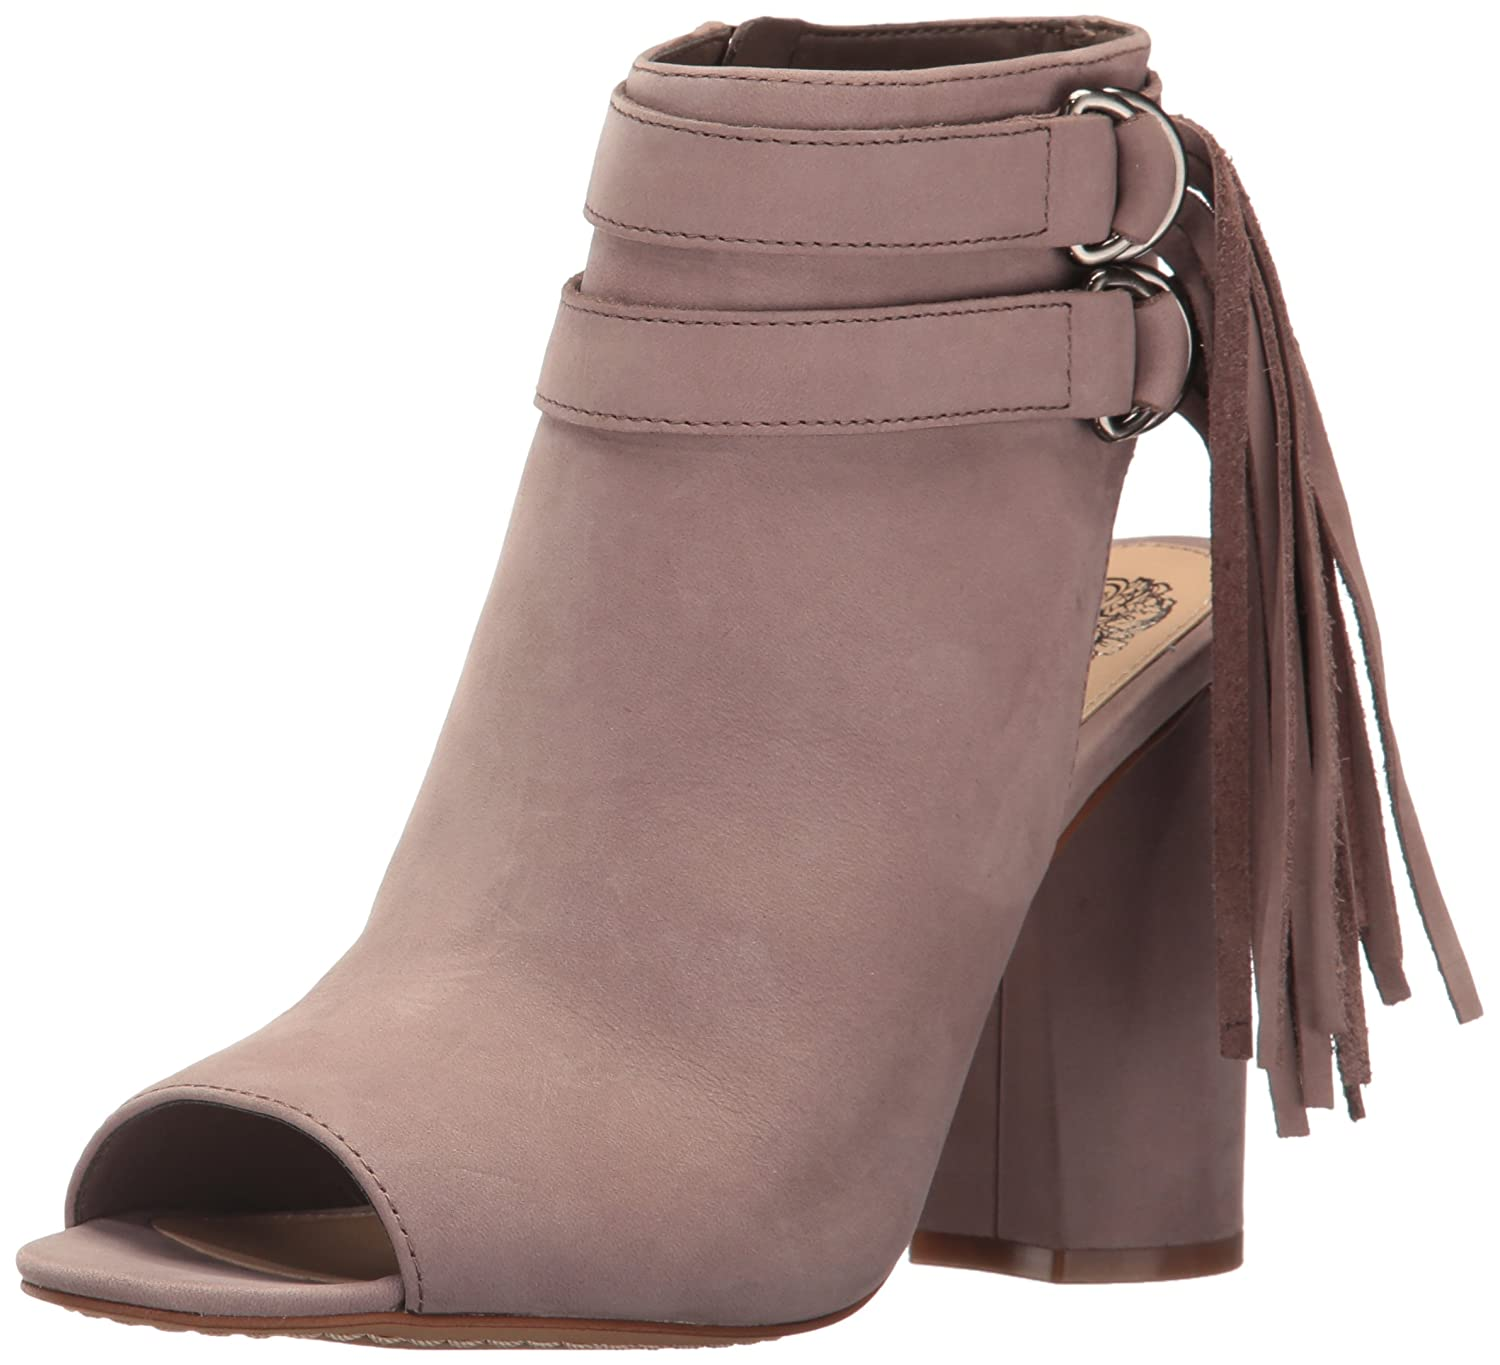 Vince Camuto Women's Catinca Ankle Boot B0719PWGLK 7.5 B(M) US|Mesa Taupe